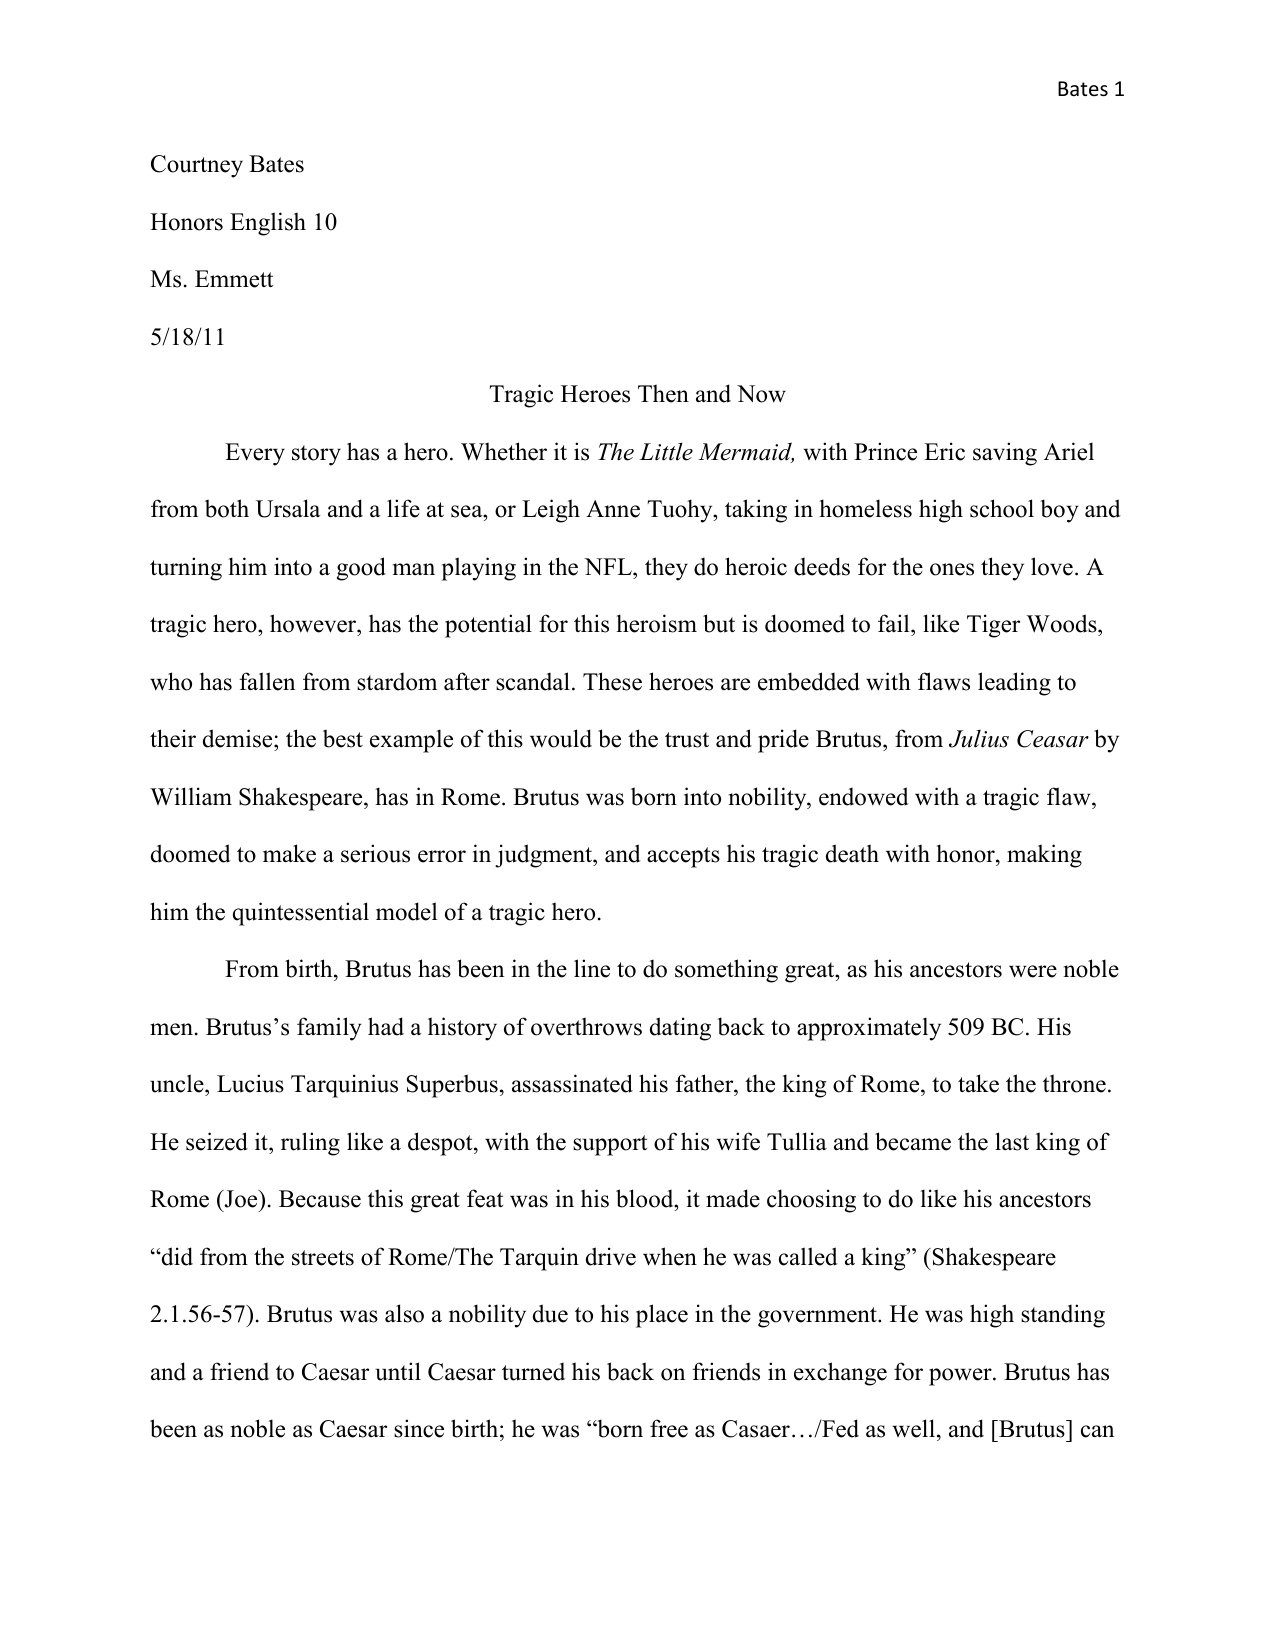 Admission essay review